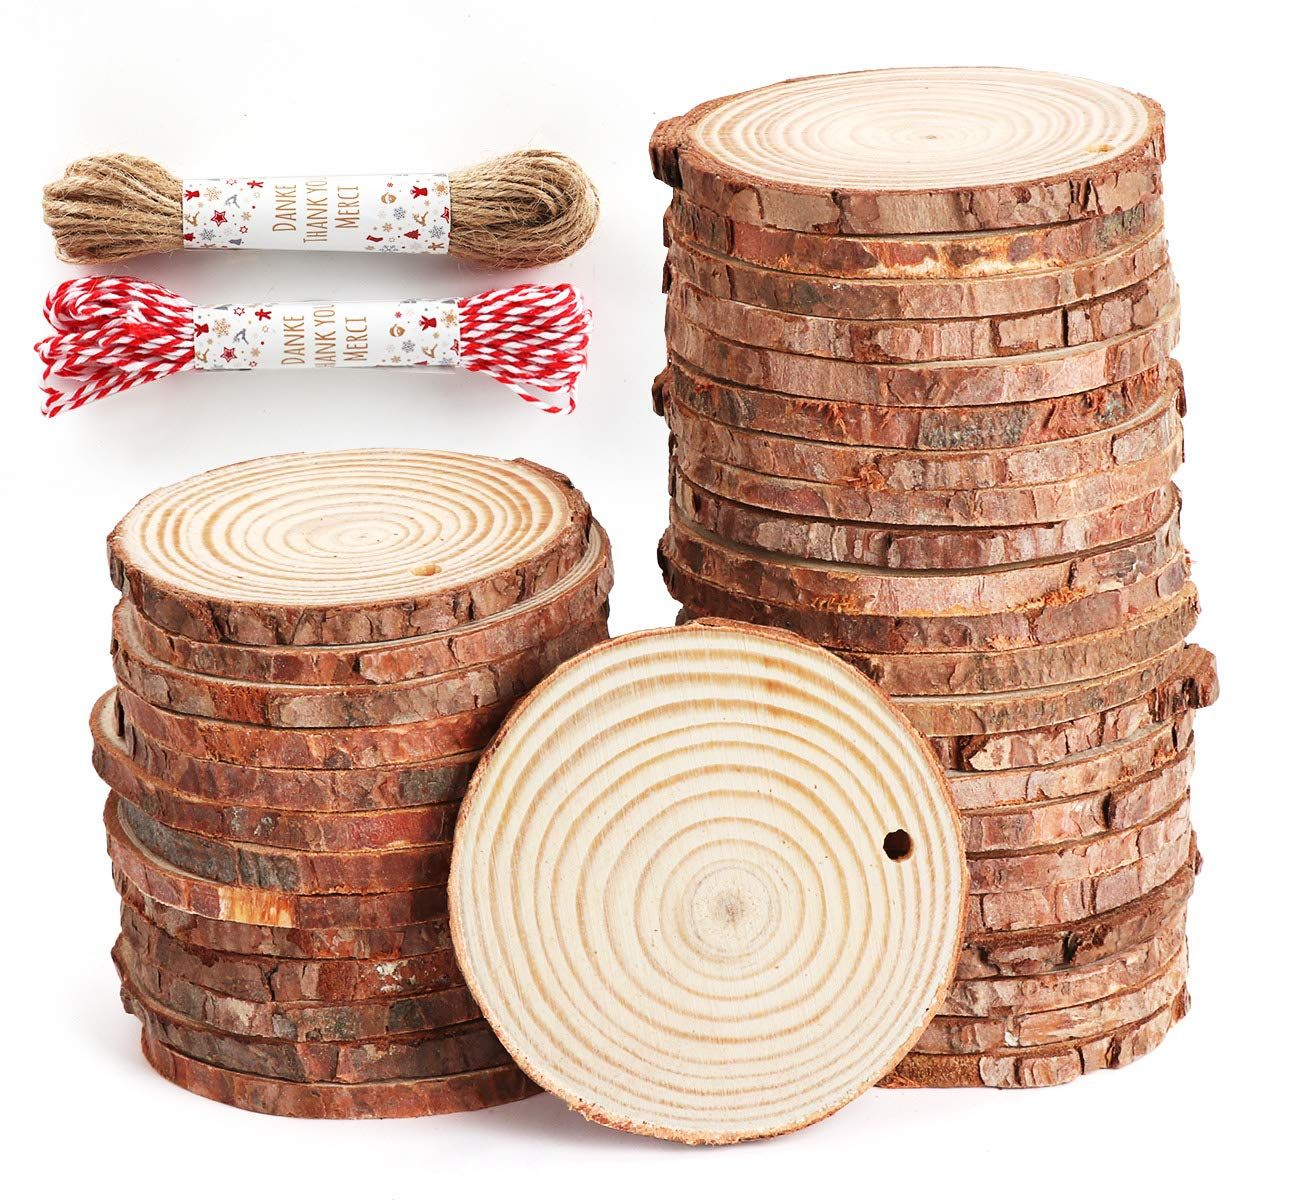 Natural Round 3-7cm Wooden Slices Rustic Wedding Table Decoration Home Craft DIY